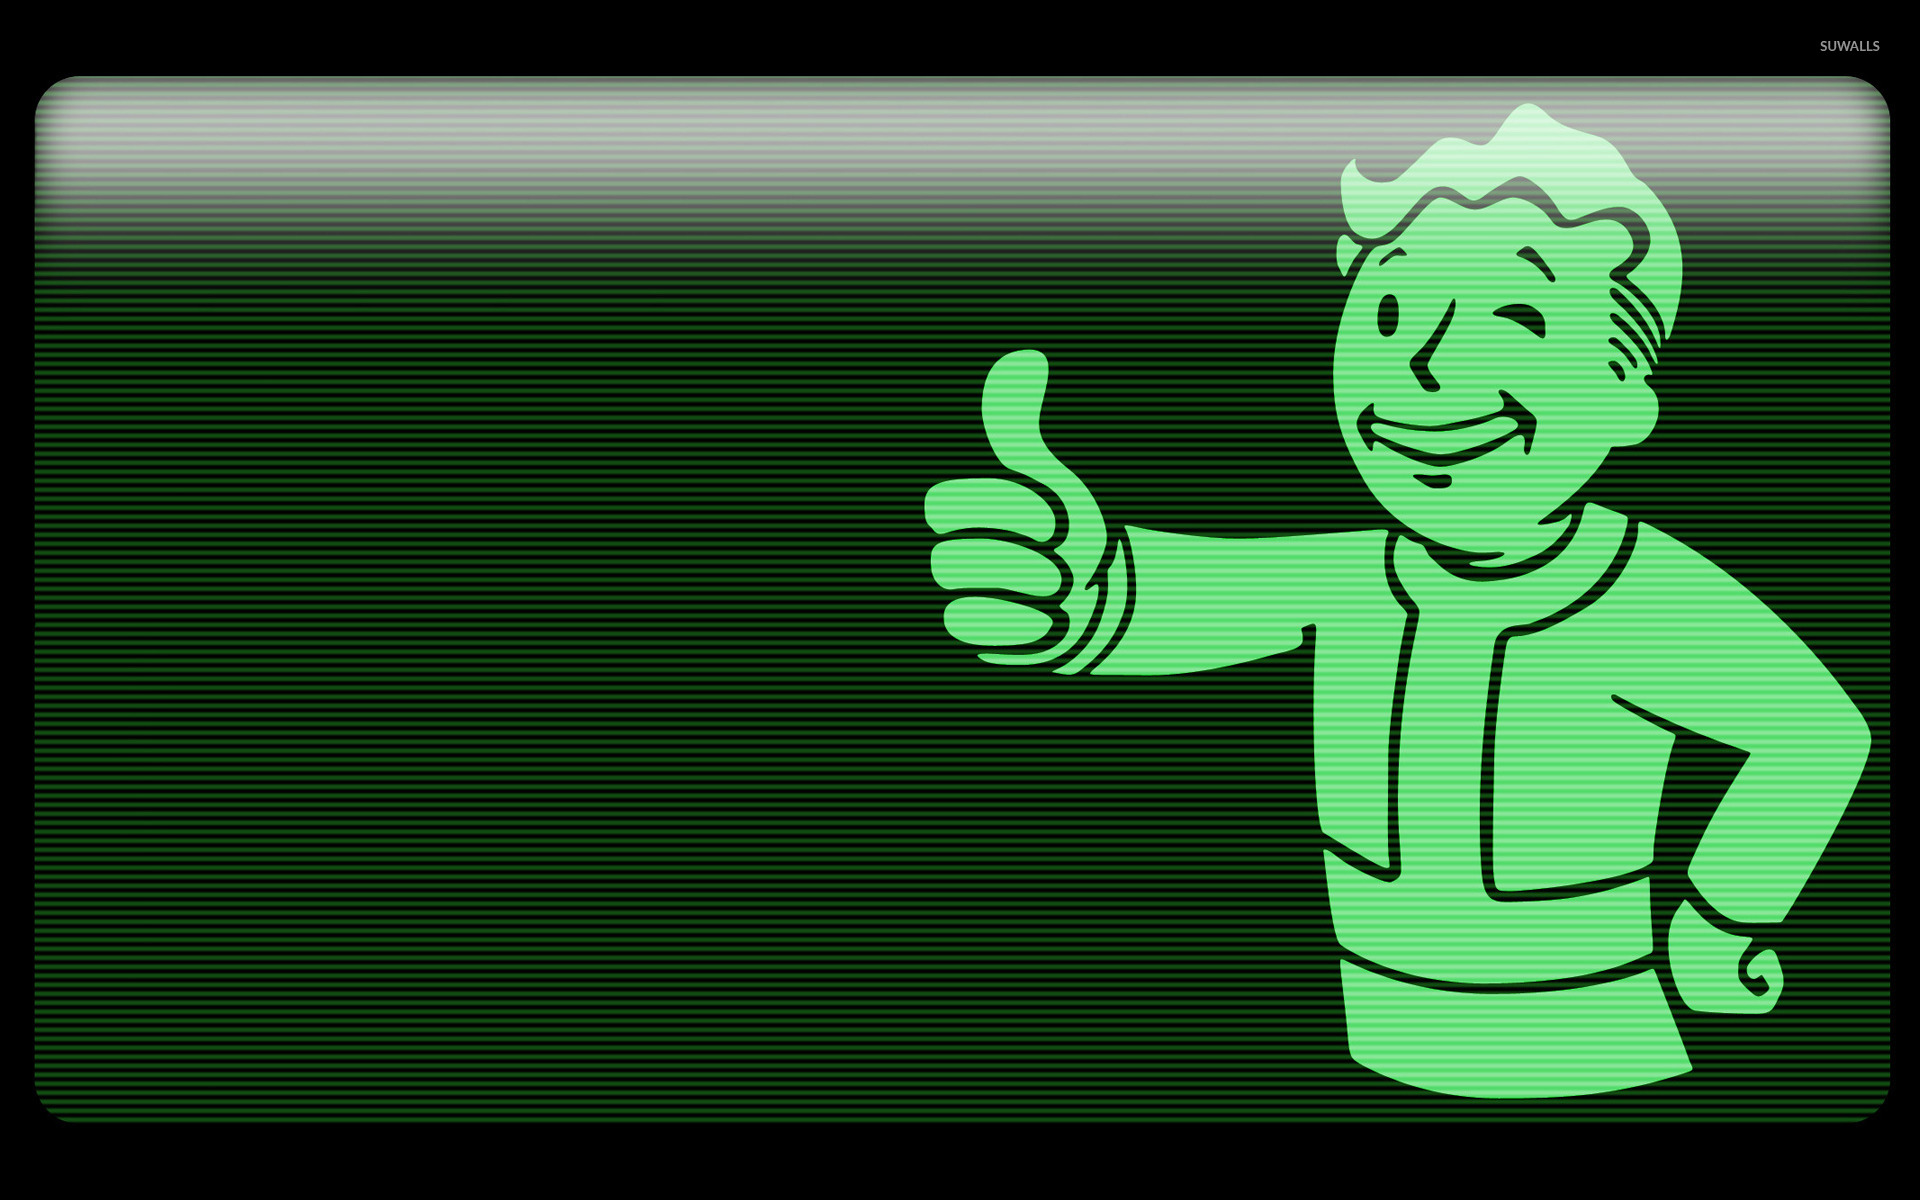 Fallout clipart pib Vault collections clipart BBCpersian7 Fallout